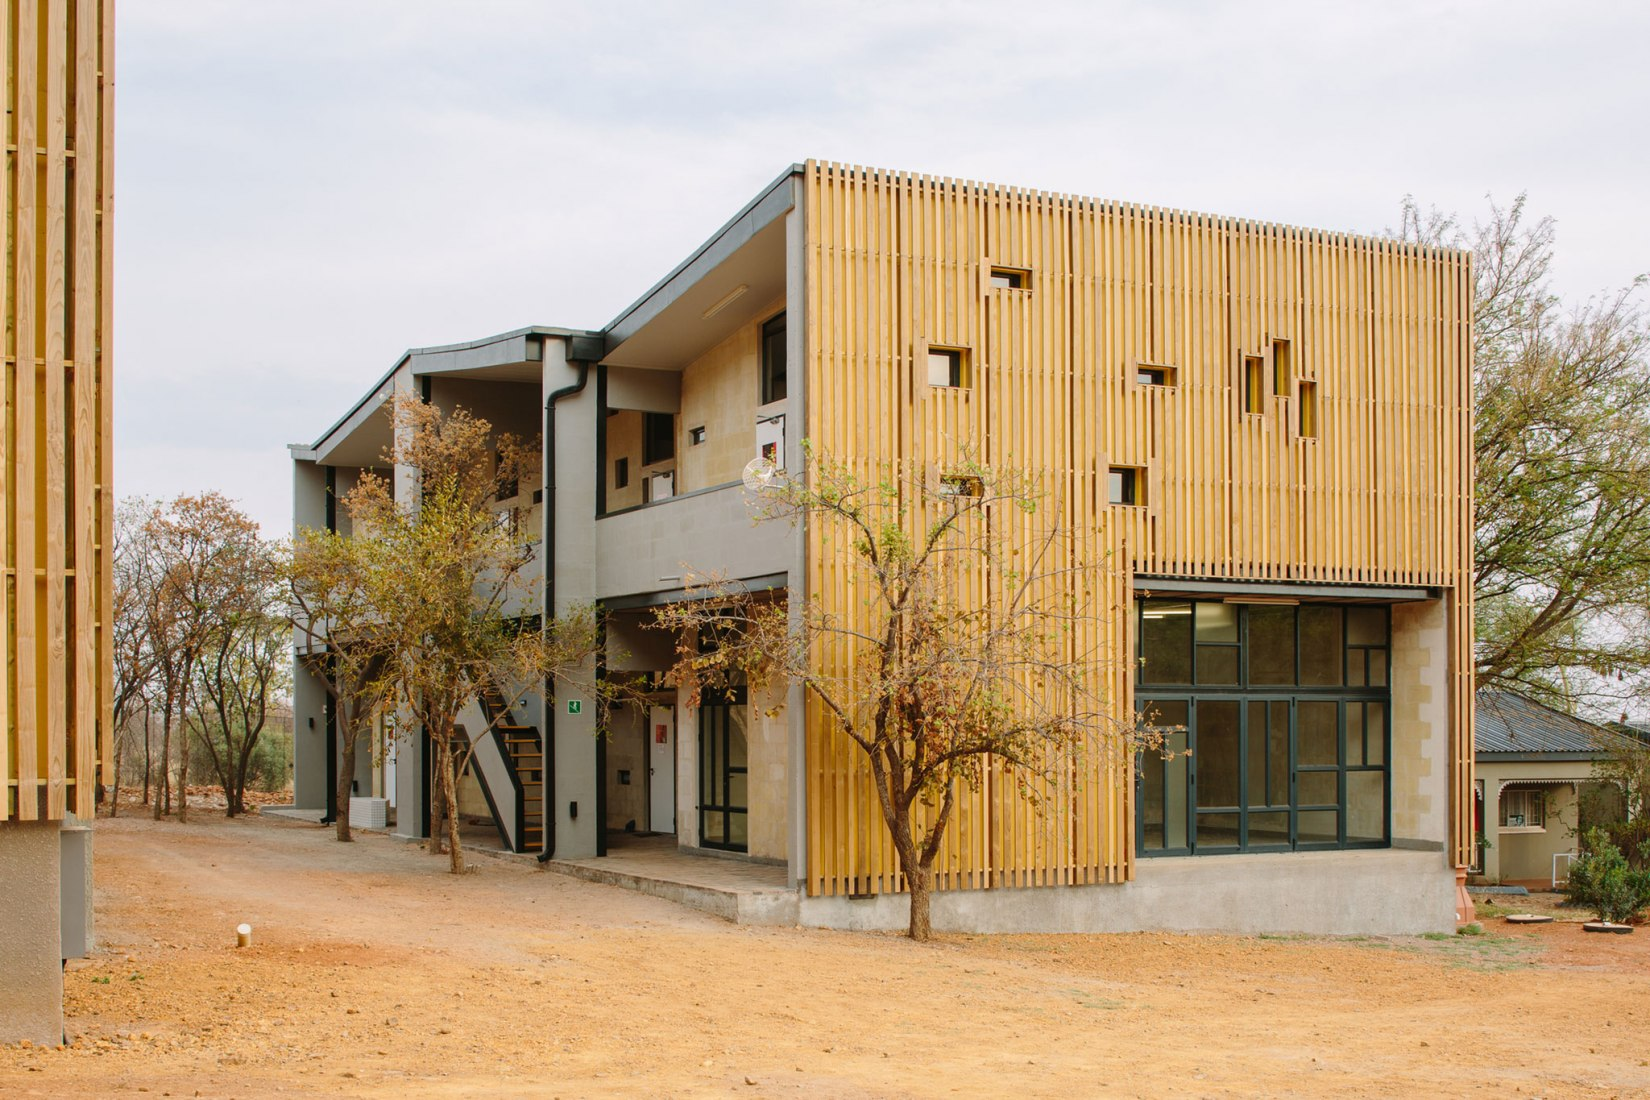 Limpopo Youth Hostel by Local Studio. Photograph by Tristan Mclaren